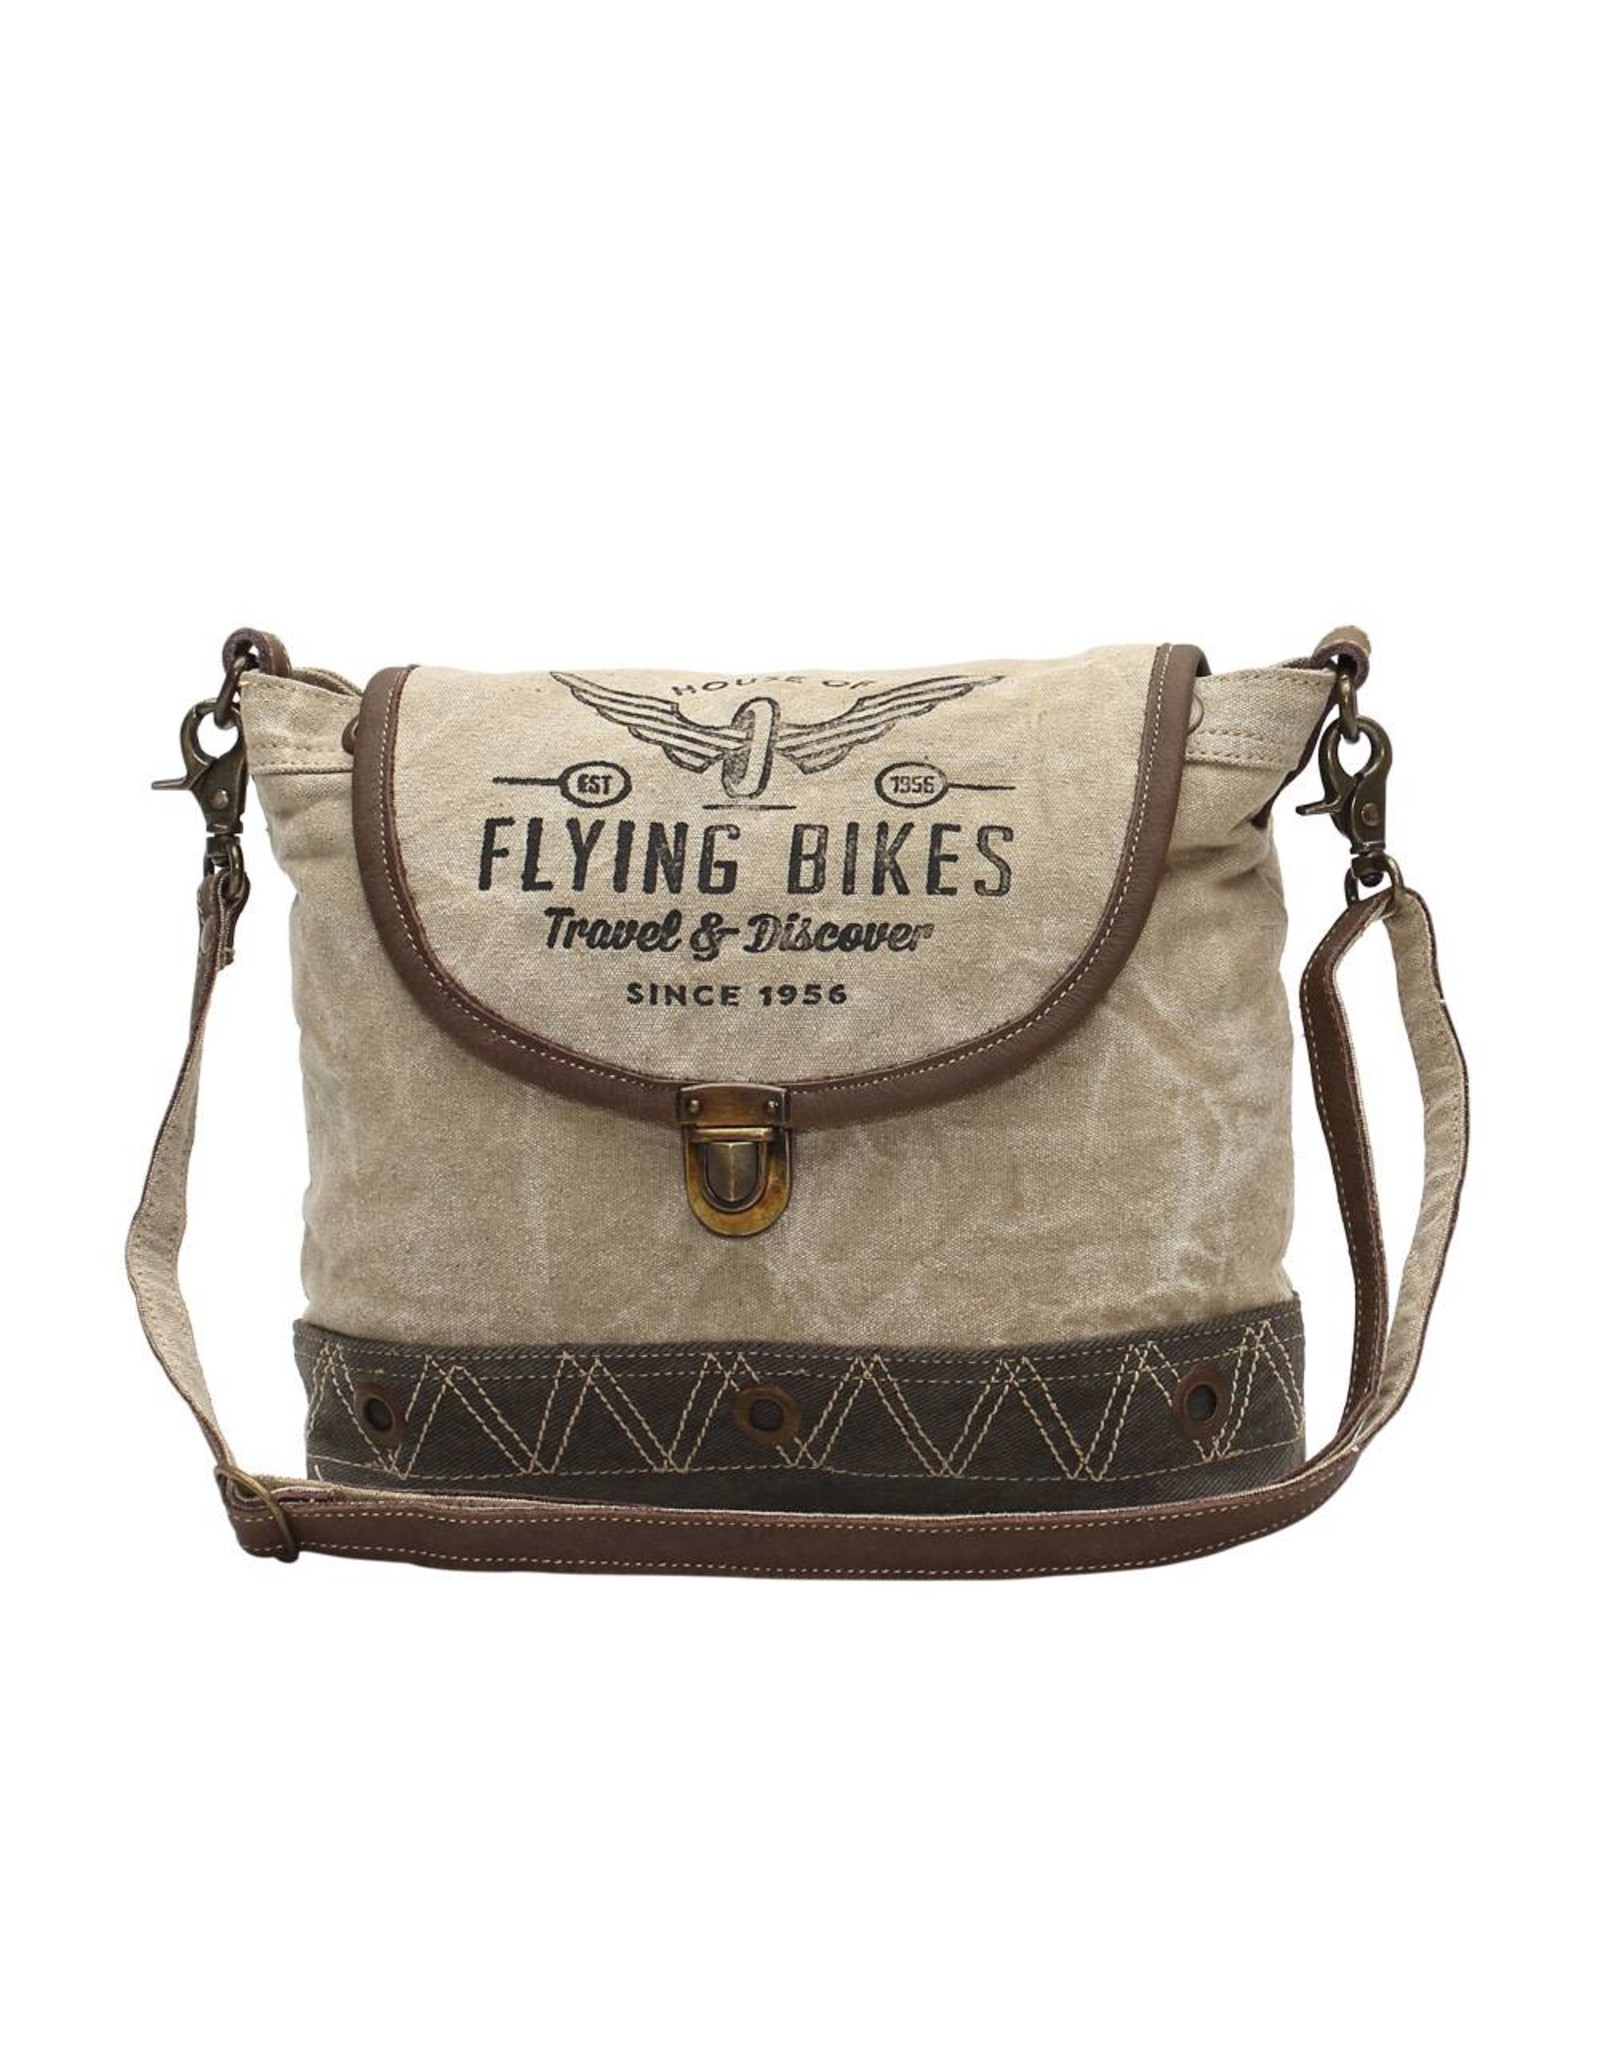 Myra Bags S-1036 Flying Bikes Crossbody